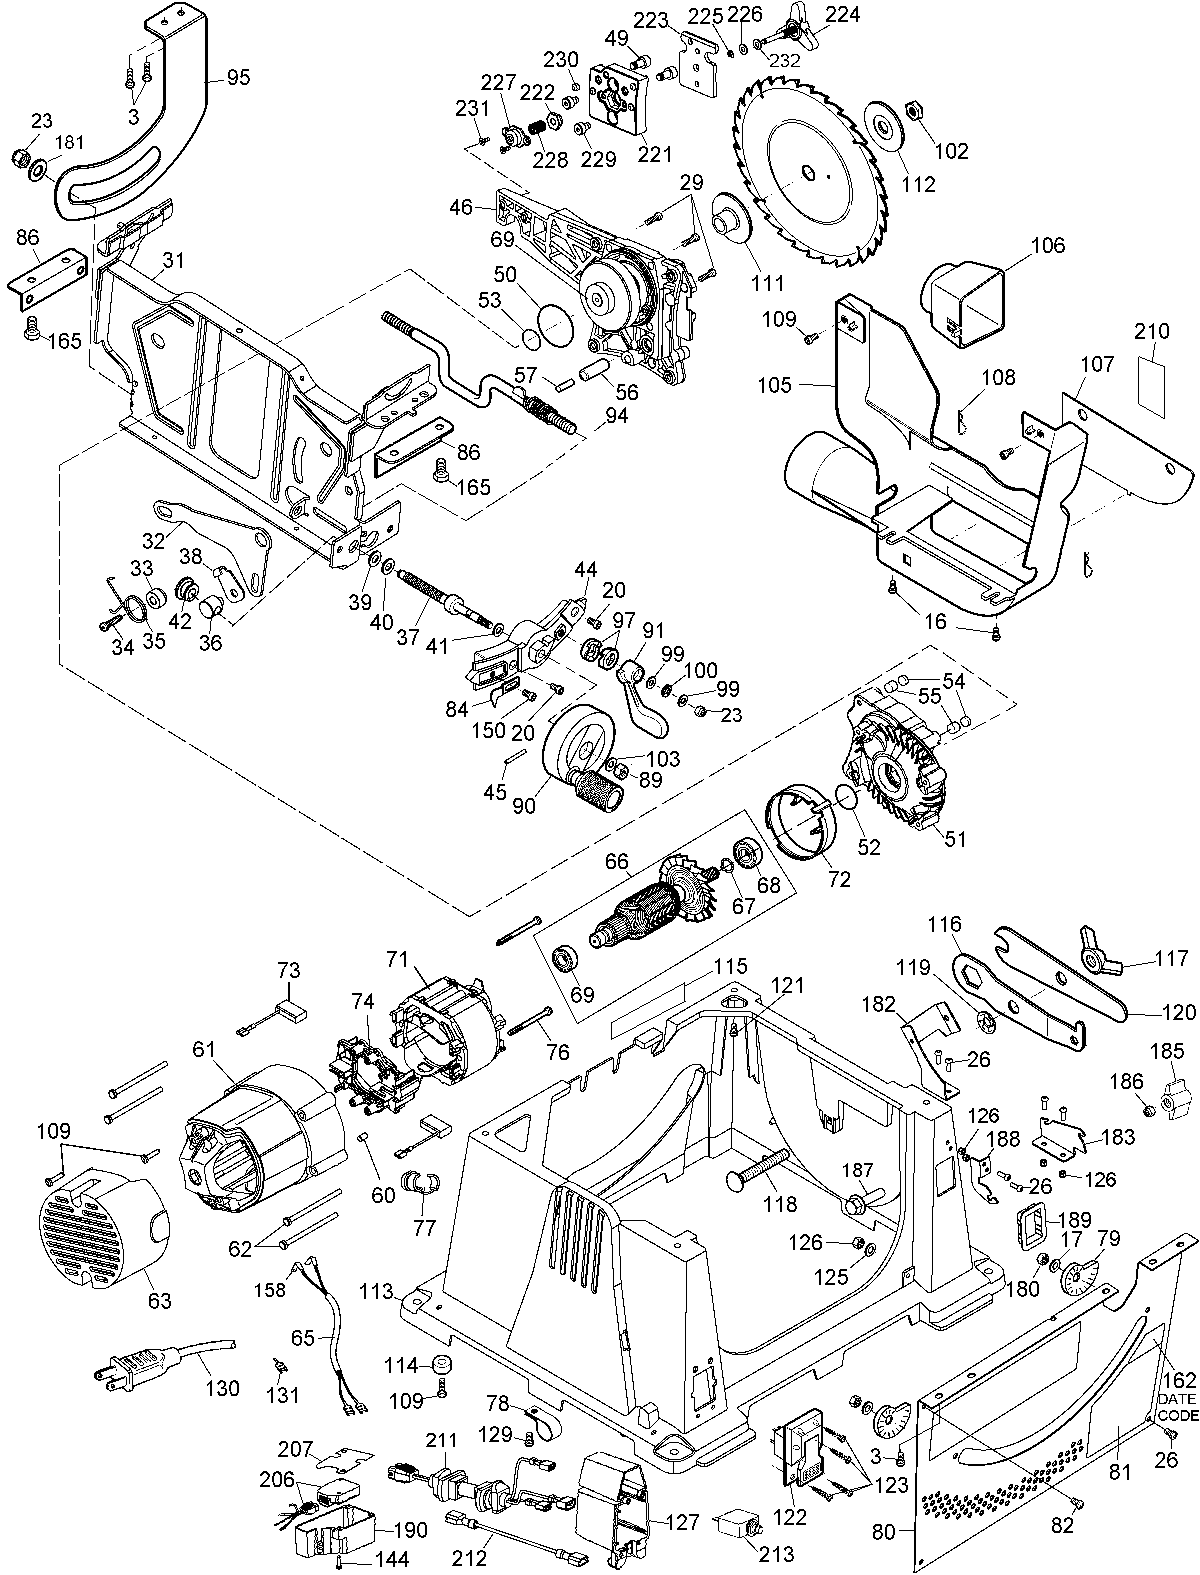 Wiring diagram for a dw745 switch